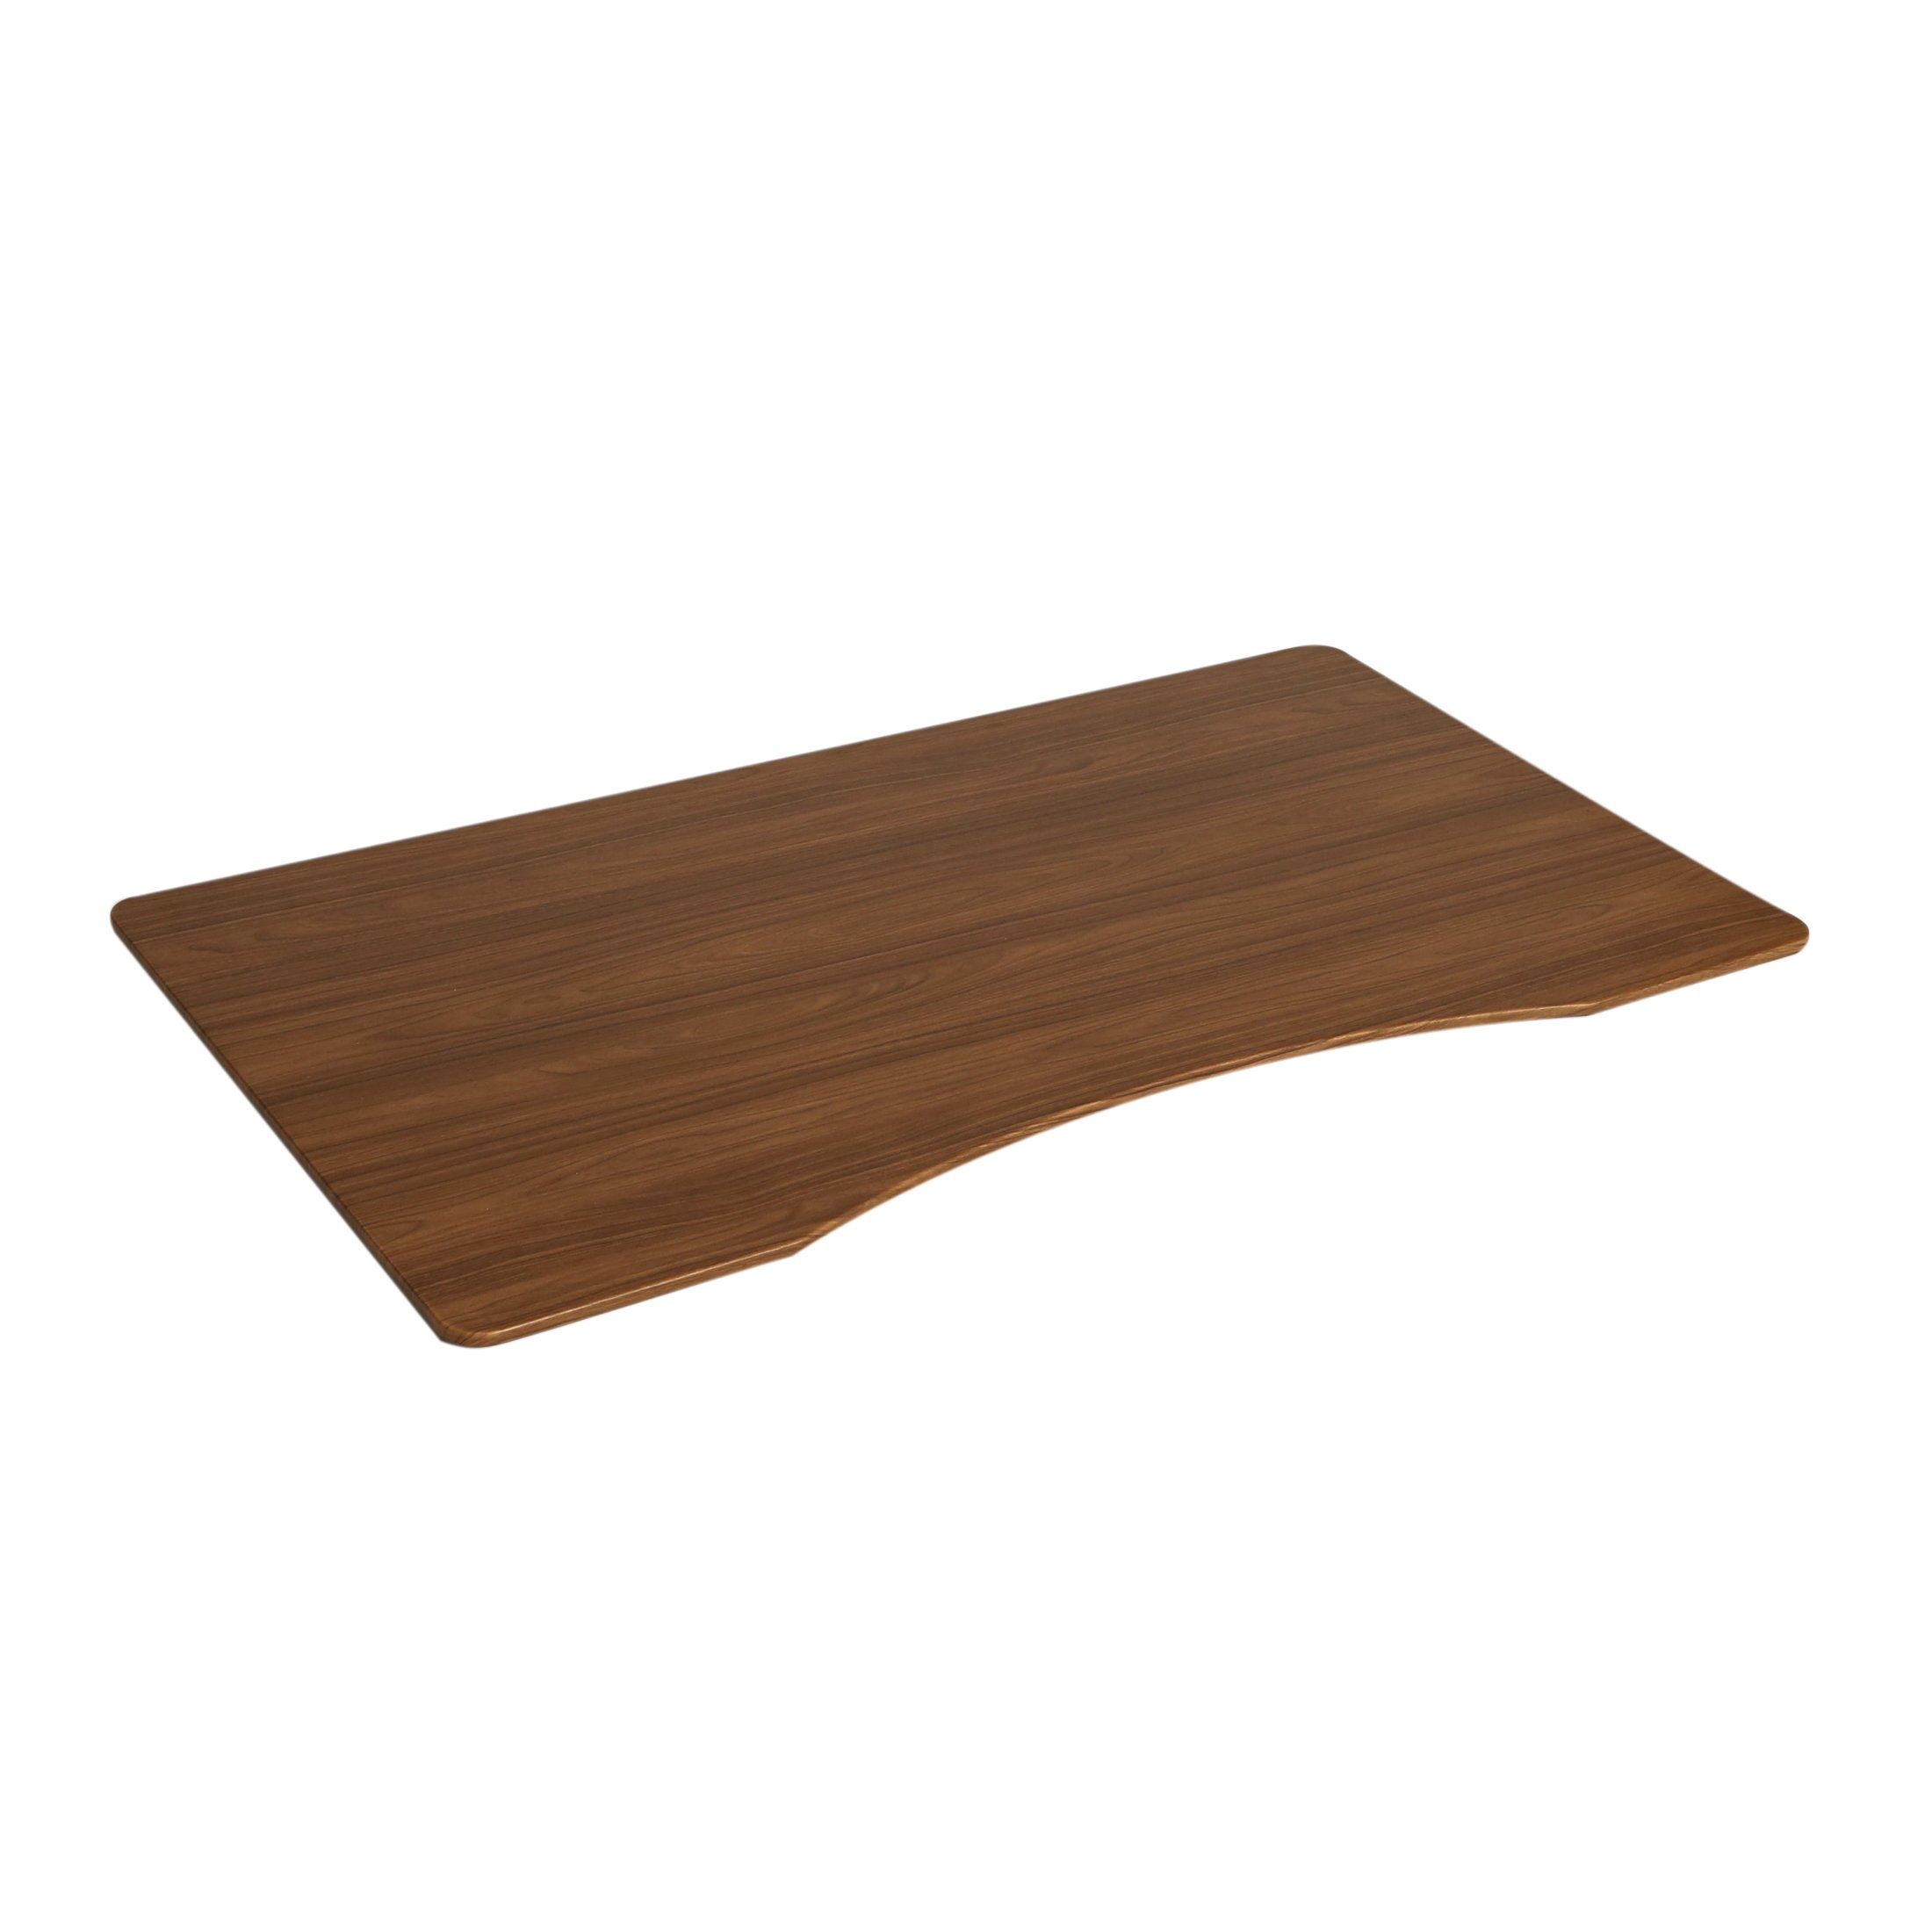 Seville Classics Ergo Desk Table Top with Beveled Bottom Edges, 54'' x 30'', Walnut by Seville Classics